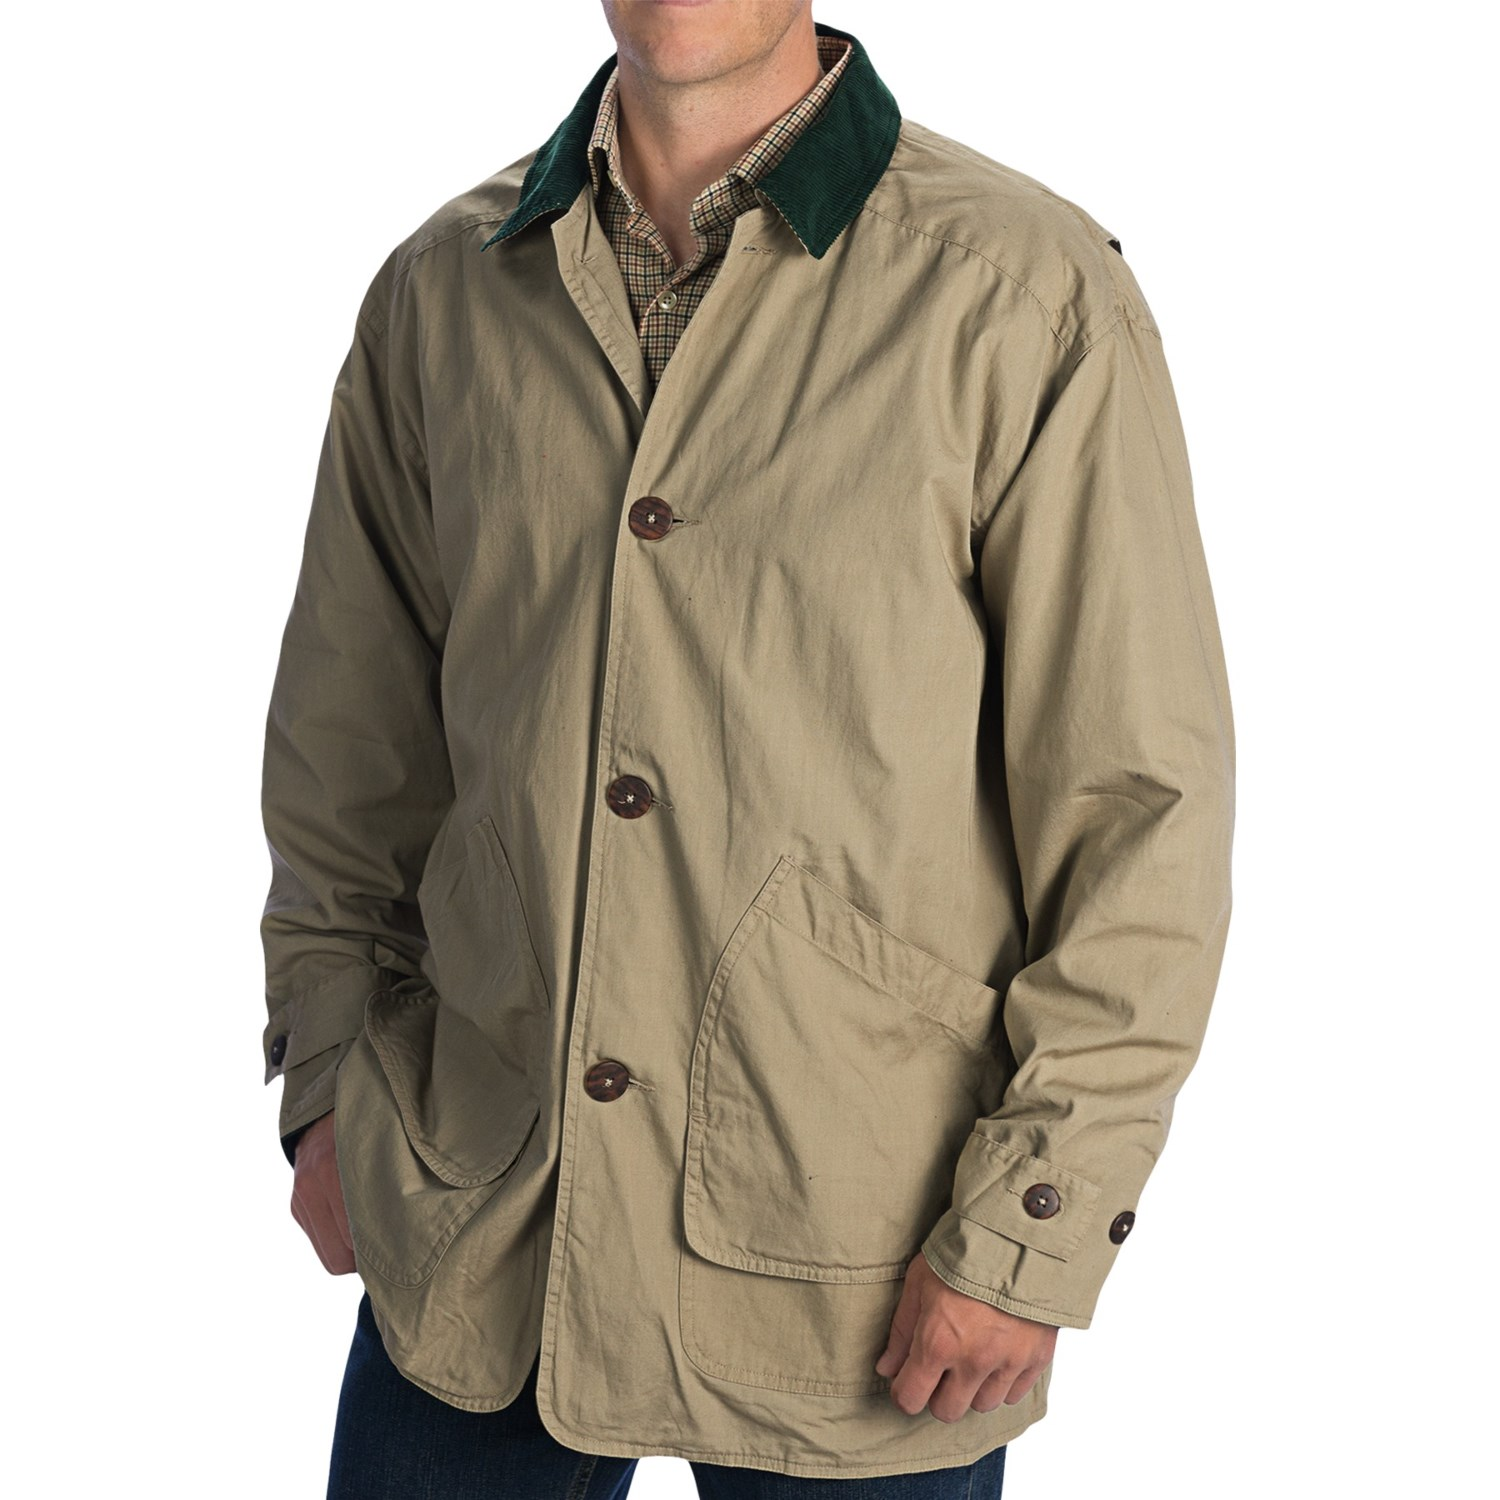 Gore-Tex and thinsulate are lightweight, waterproof, and warm fabrics suitable for all-weather use. To see the full collection of best men's jackets, start slideshow below.